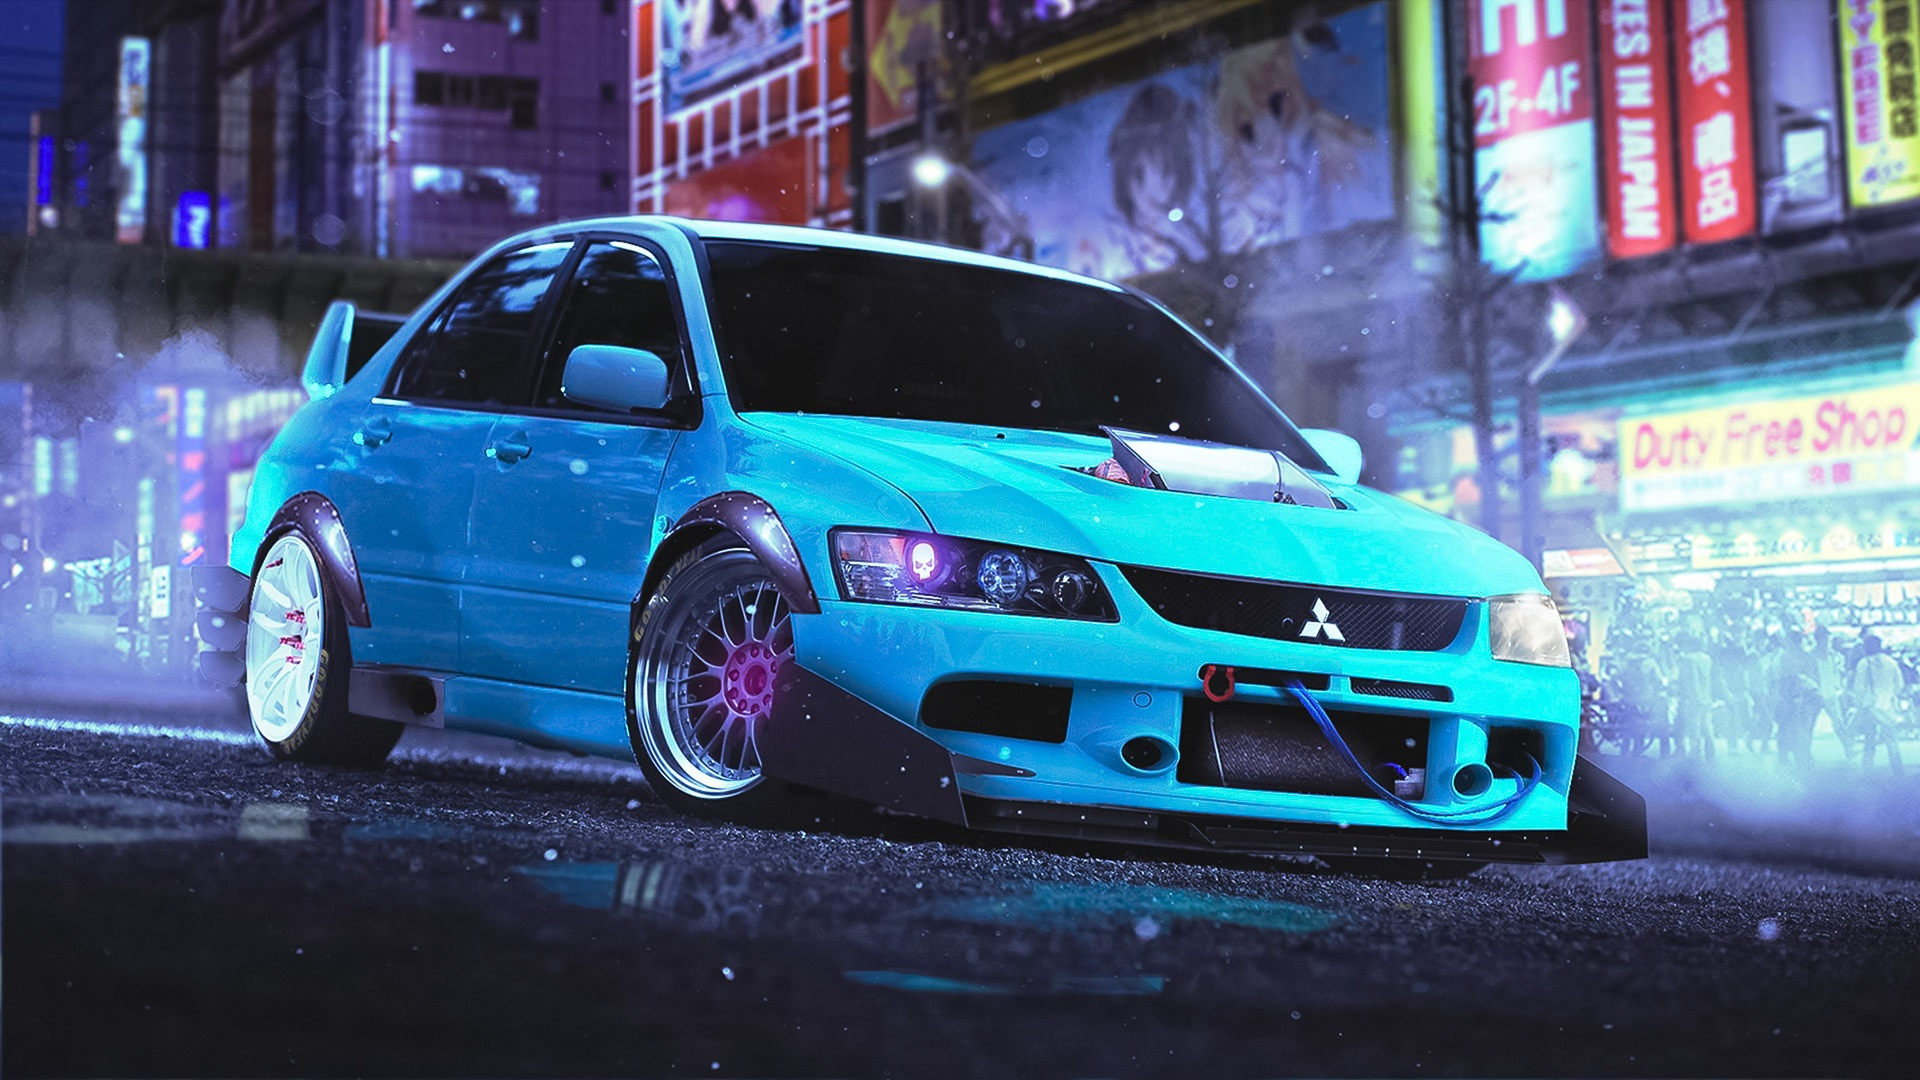 Mitsubishi-Lancer-Evolution-9-blue-car_1920x1080